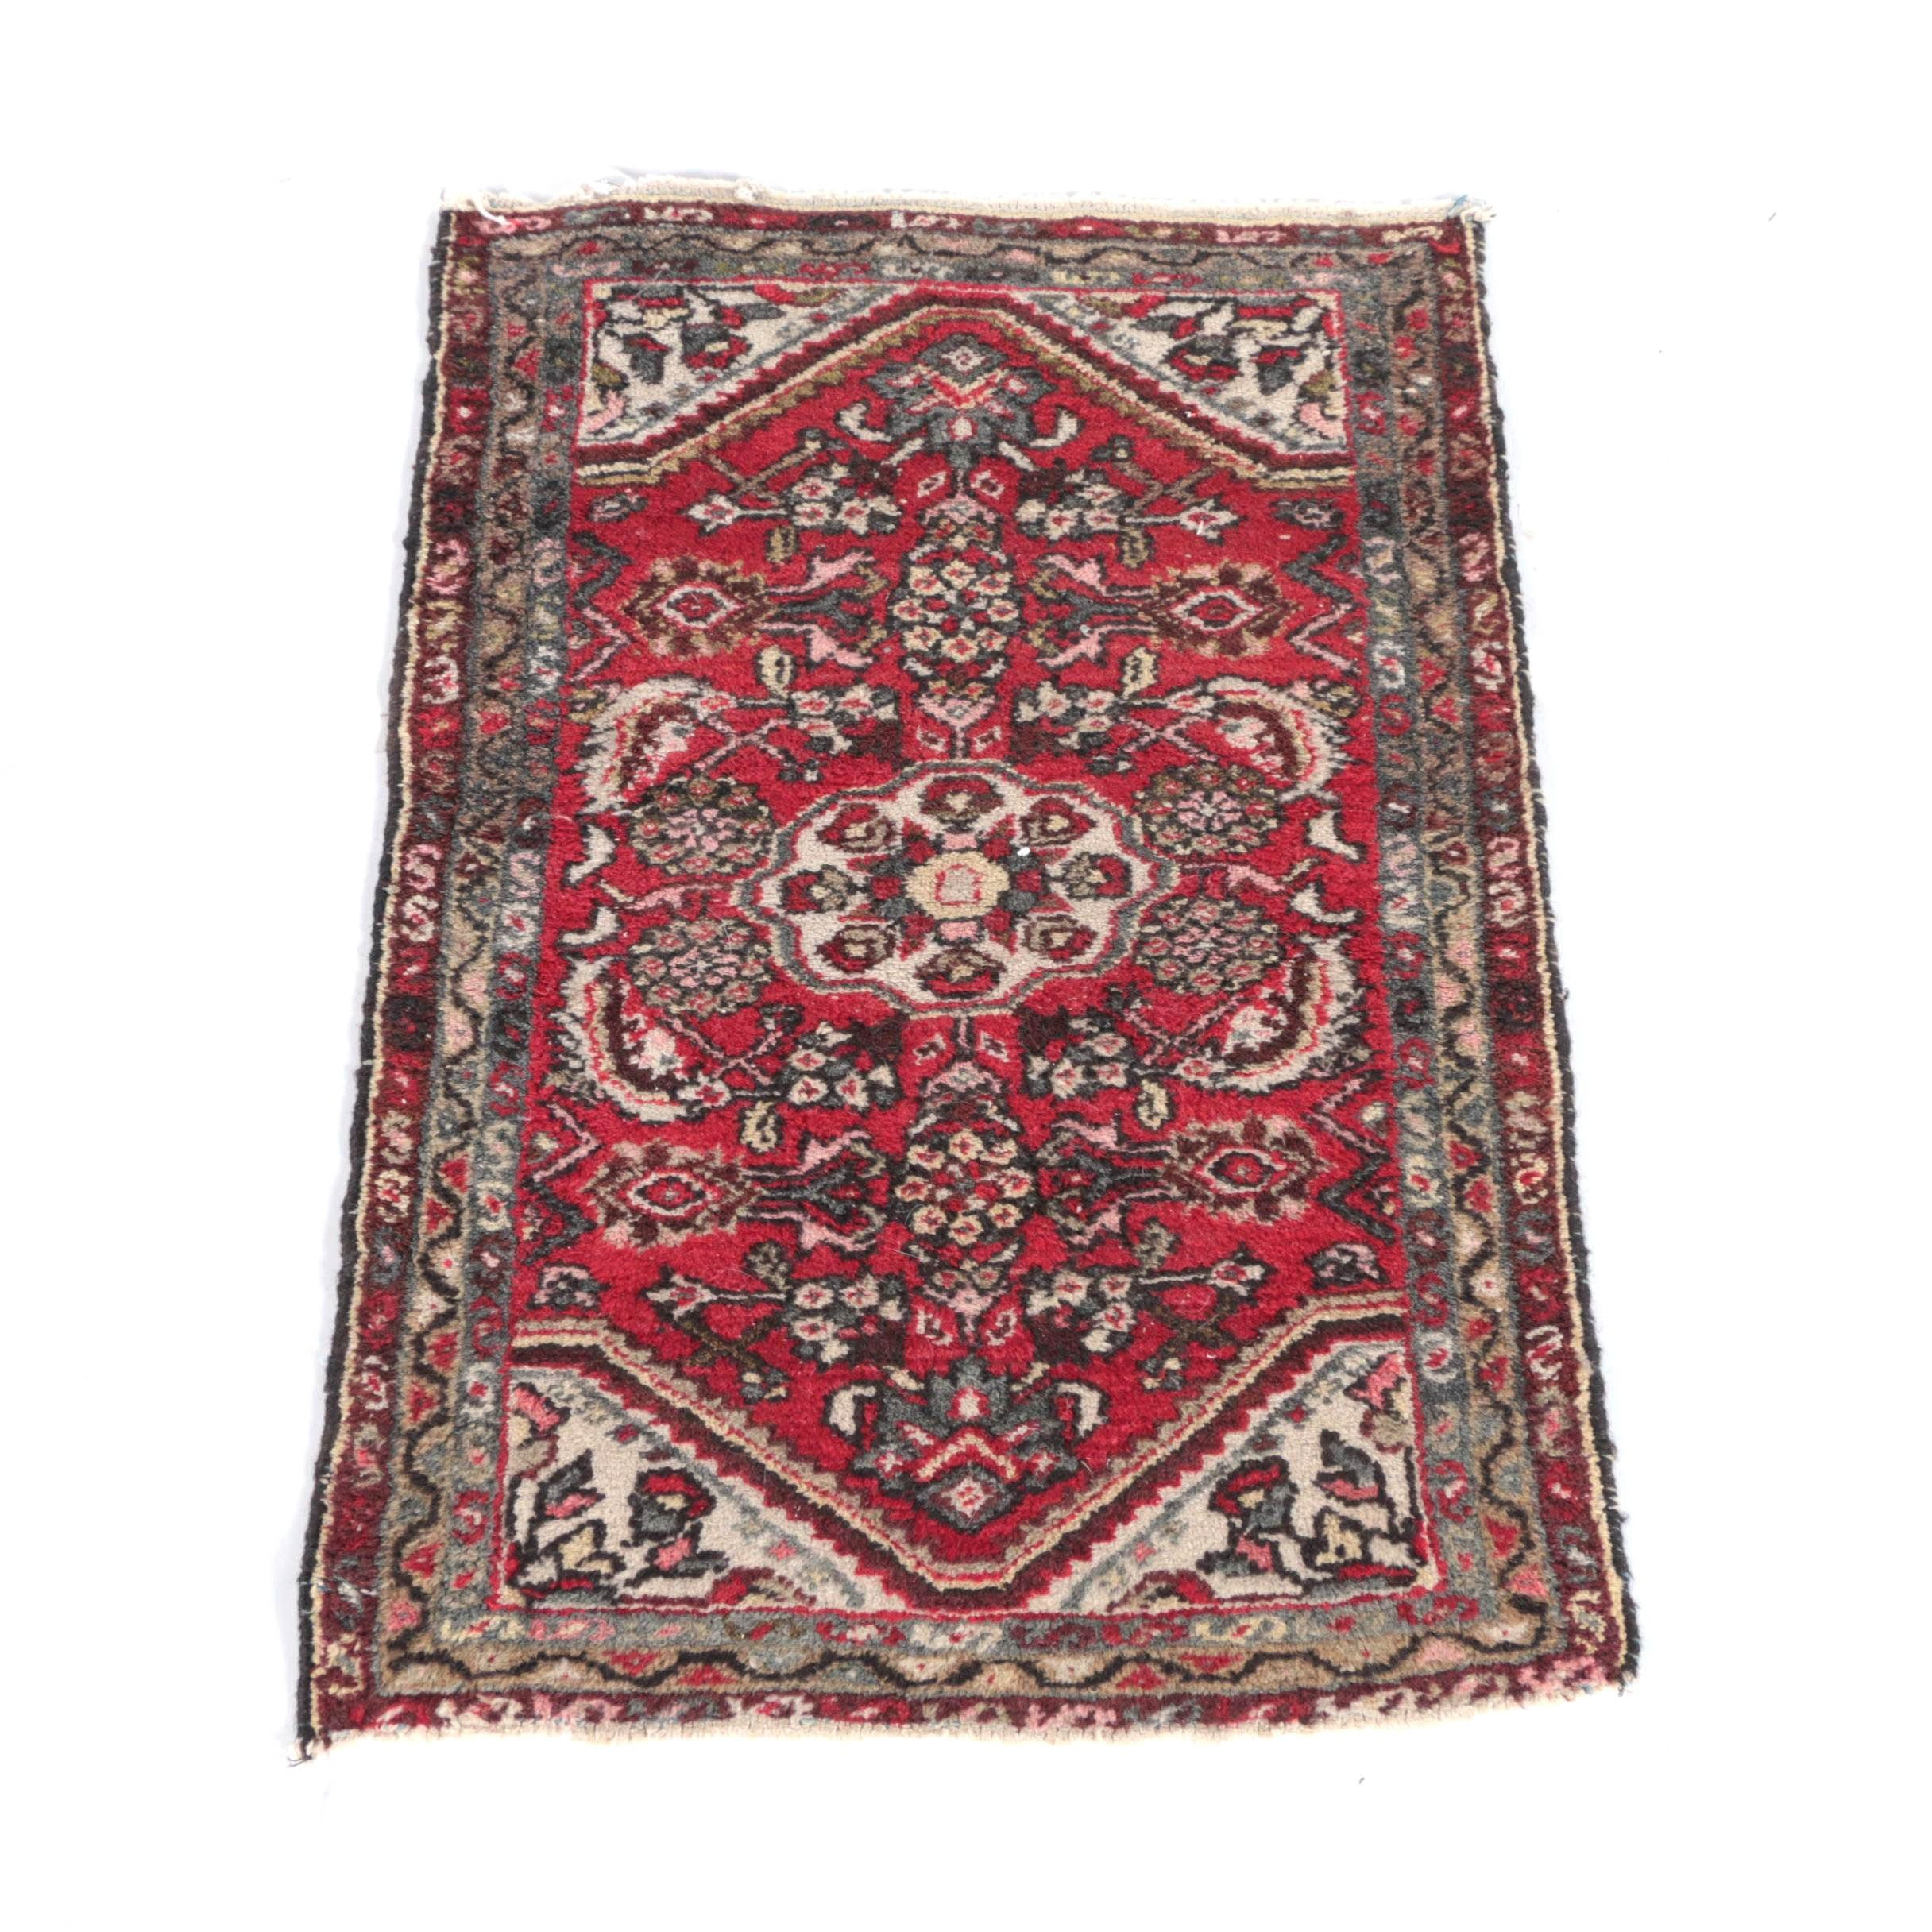 Vintage Hand-Knotted Persian Sarouk Wool Accent Rug